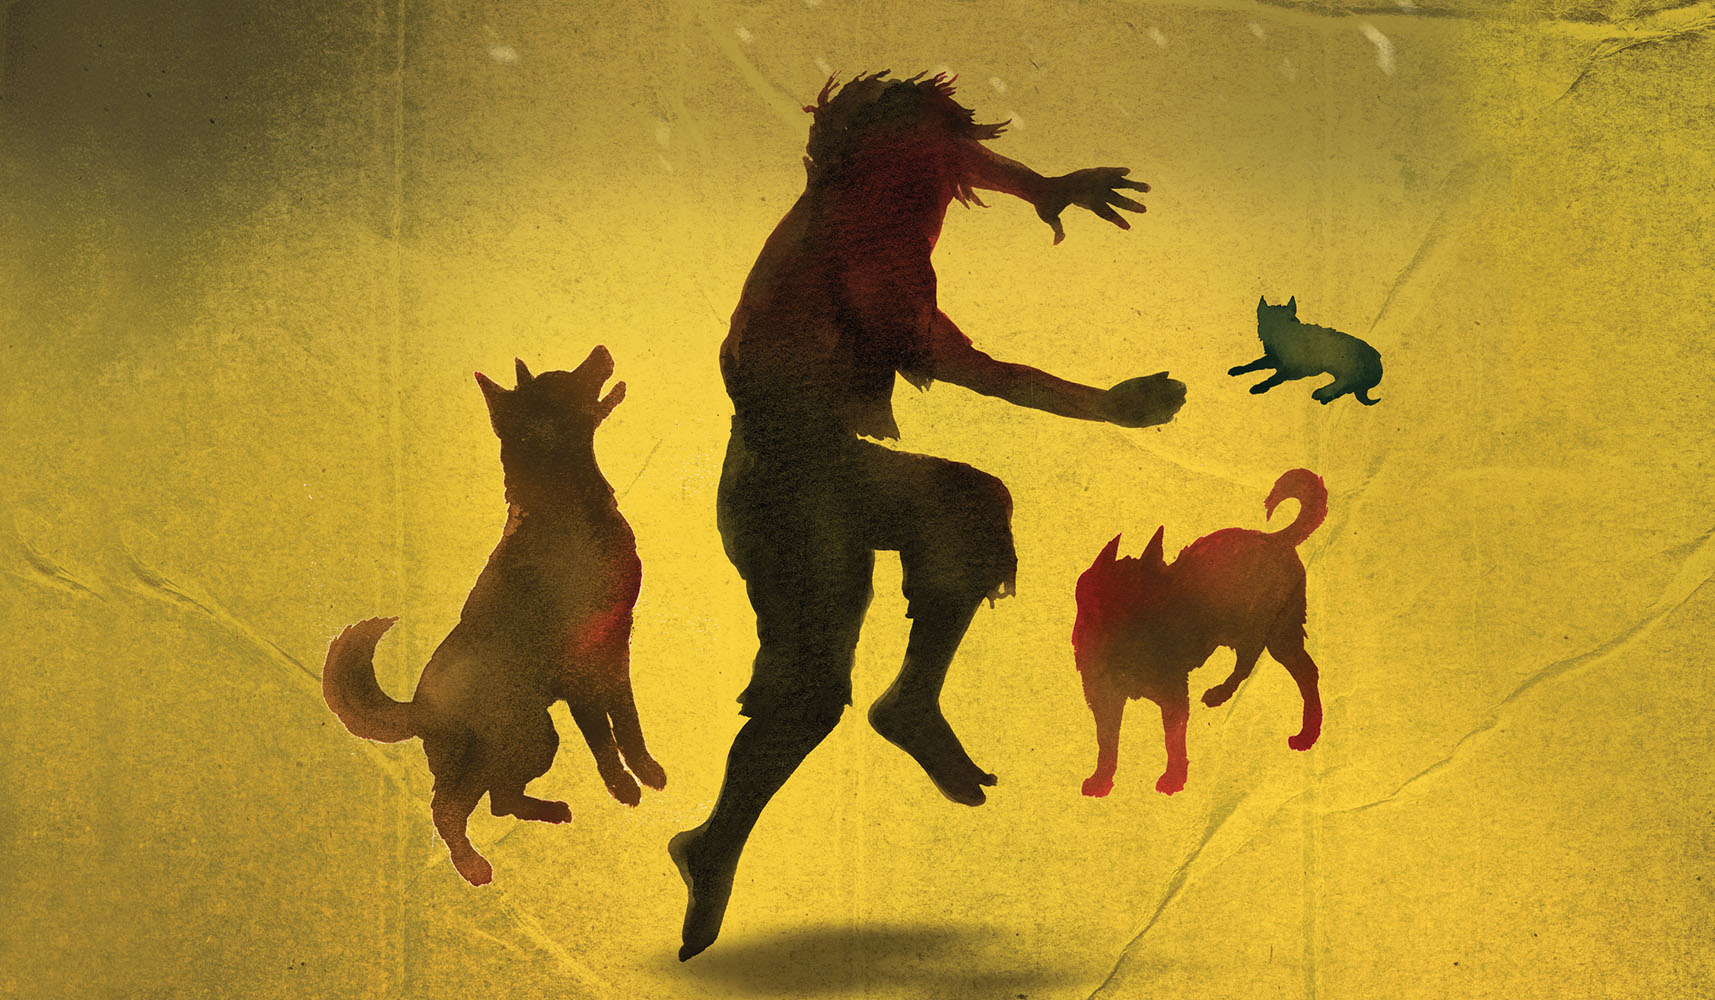 Detail from cover of DOG BOY